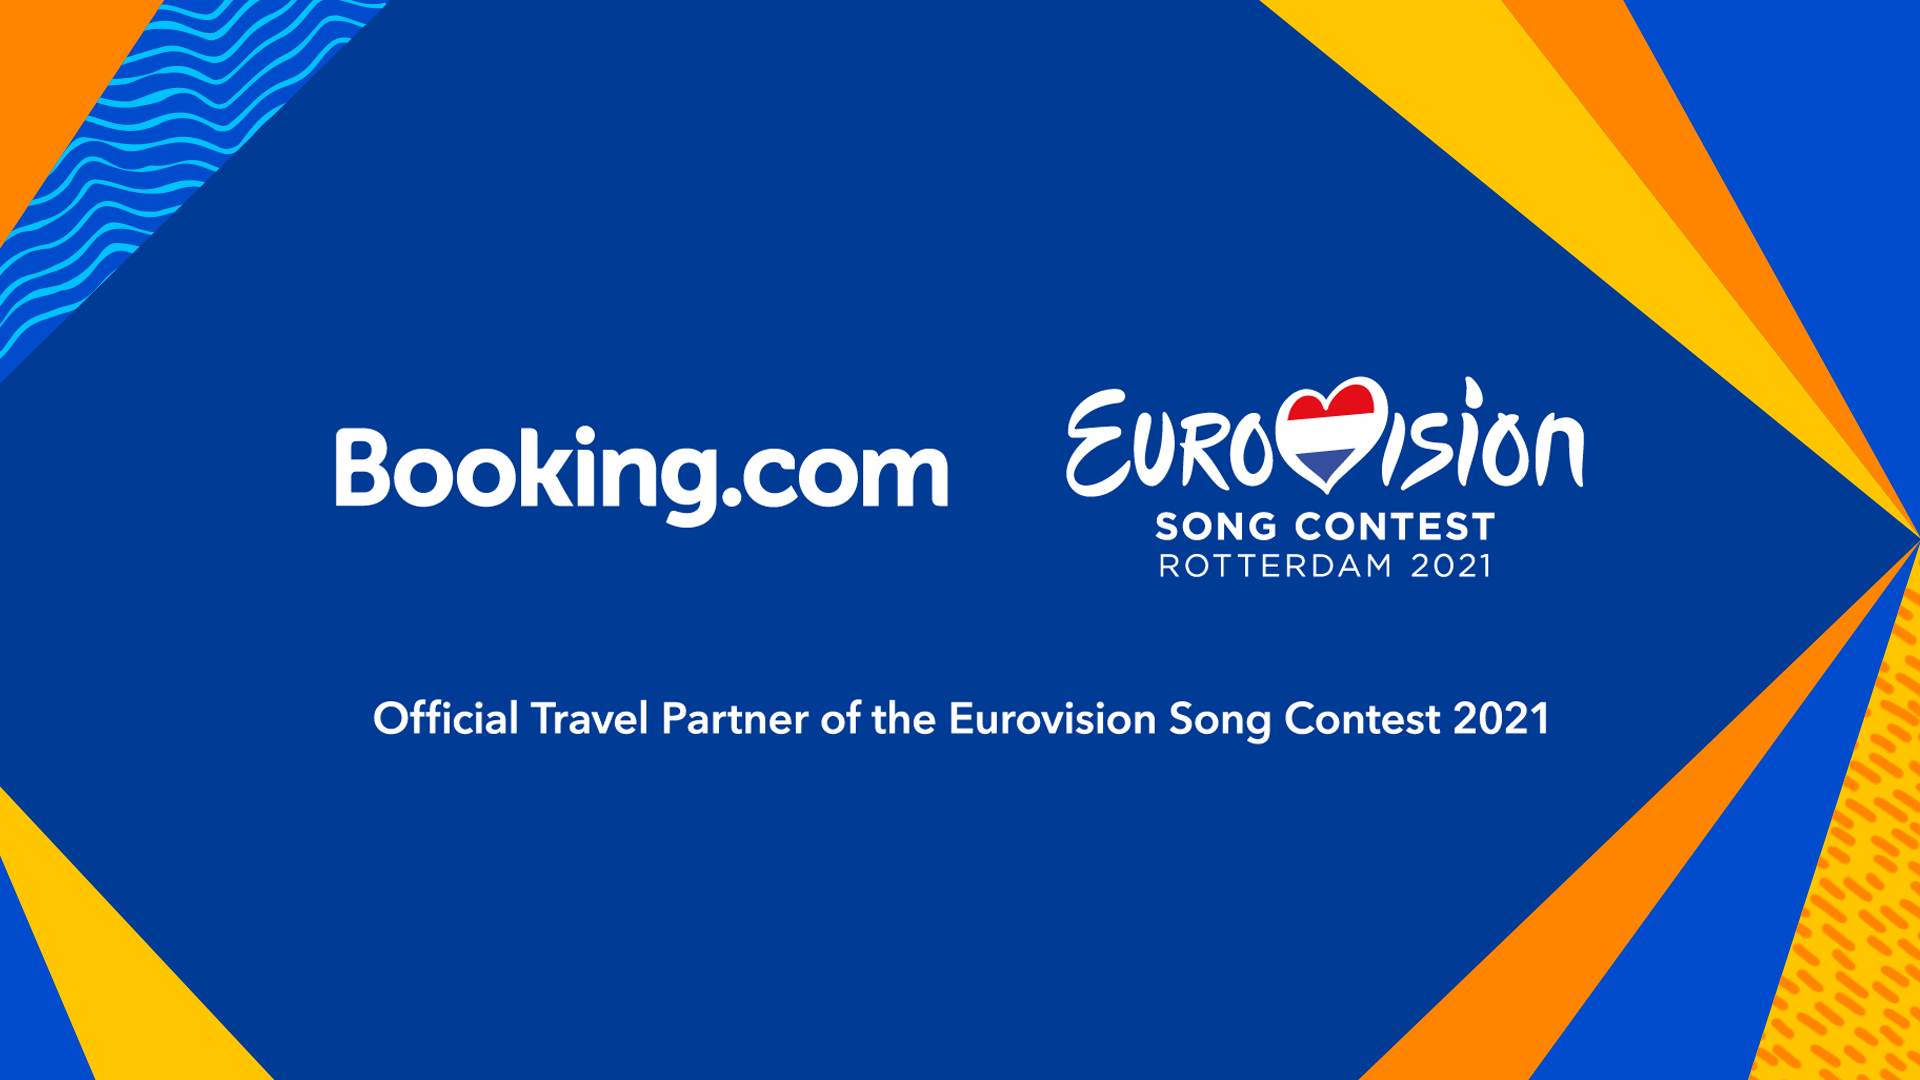 Booking.com as Official Travel Partner of  Eurovision 2021